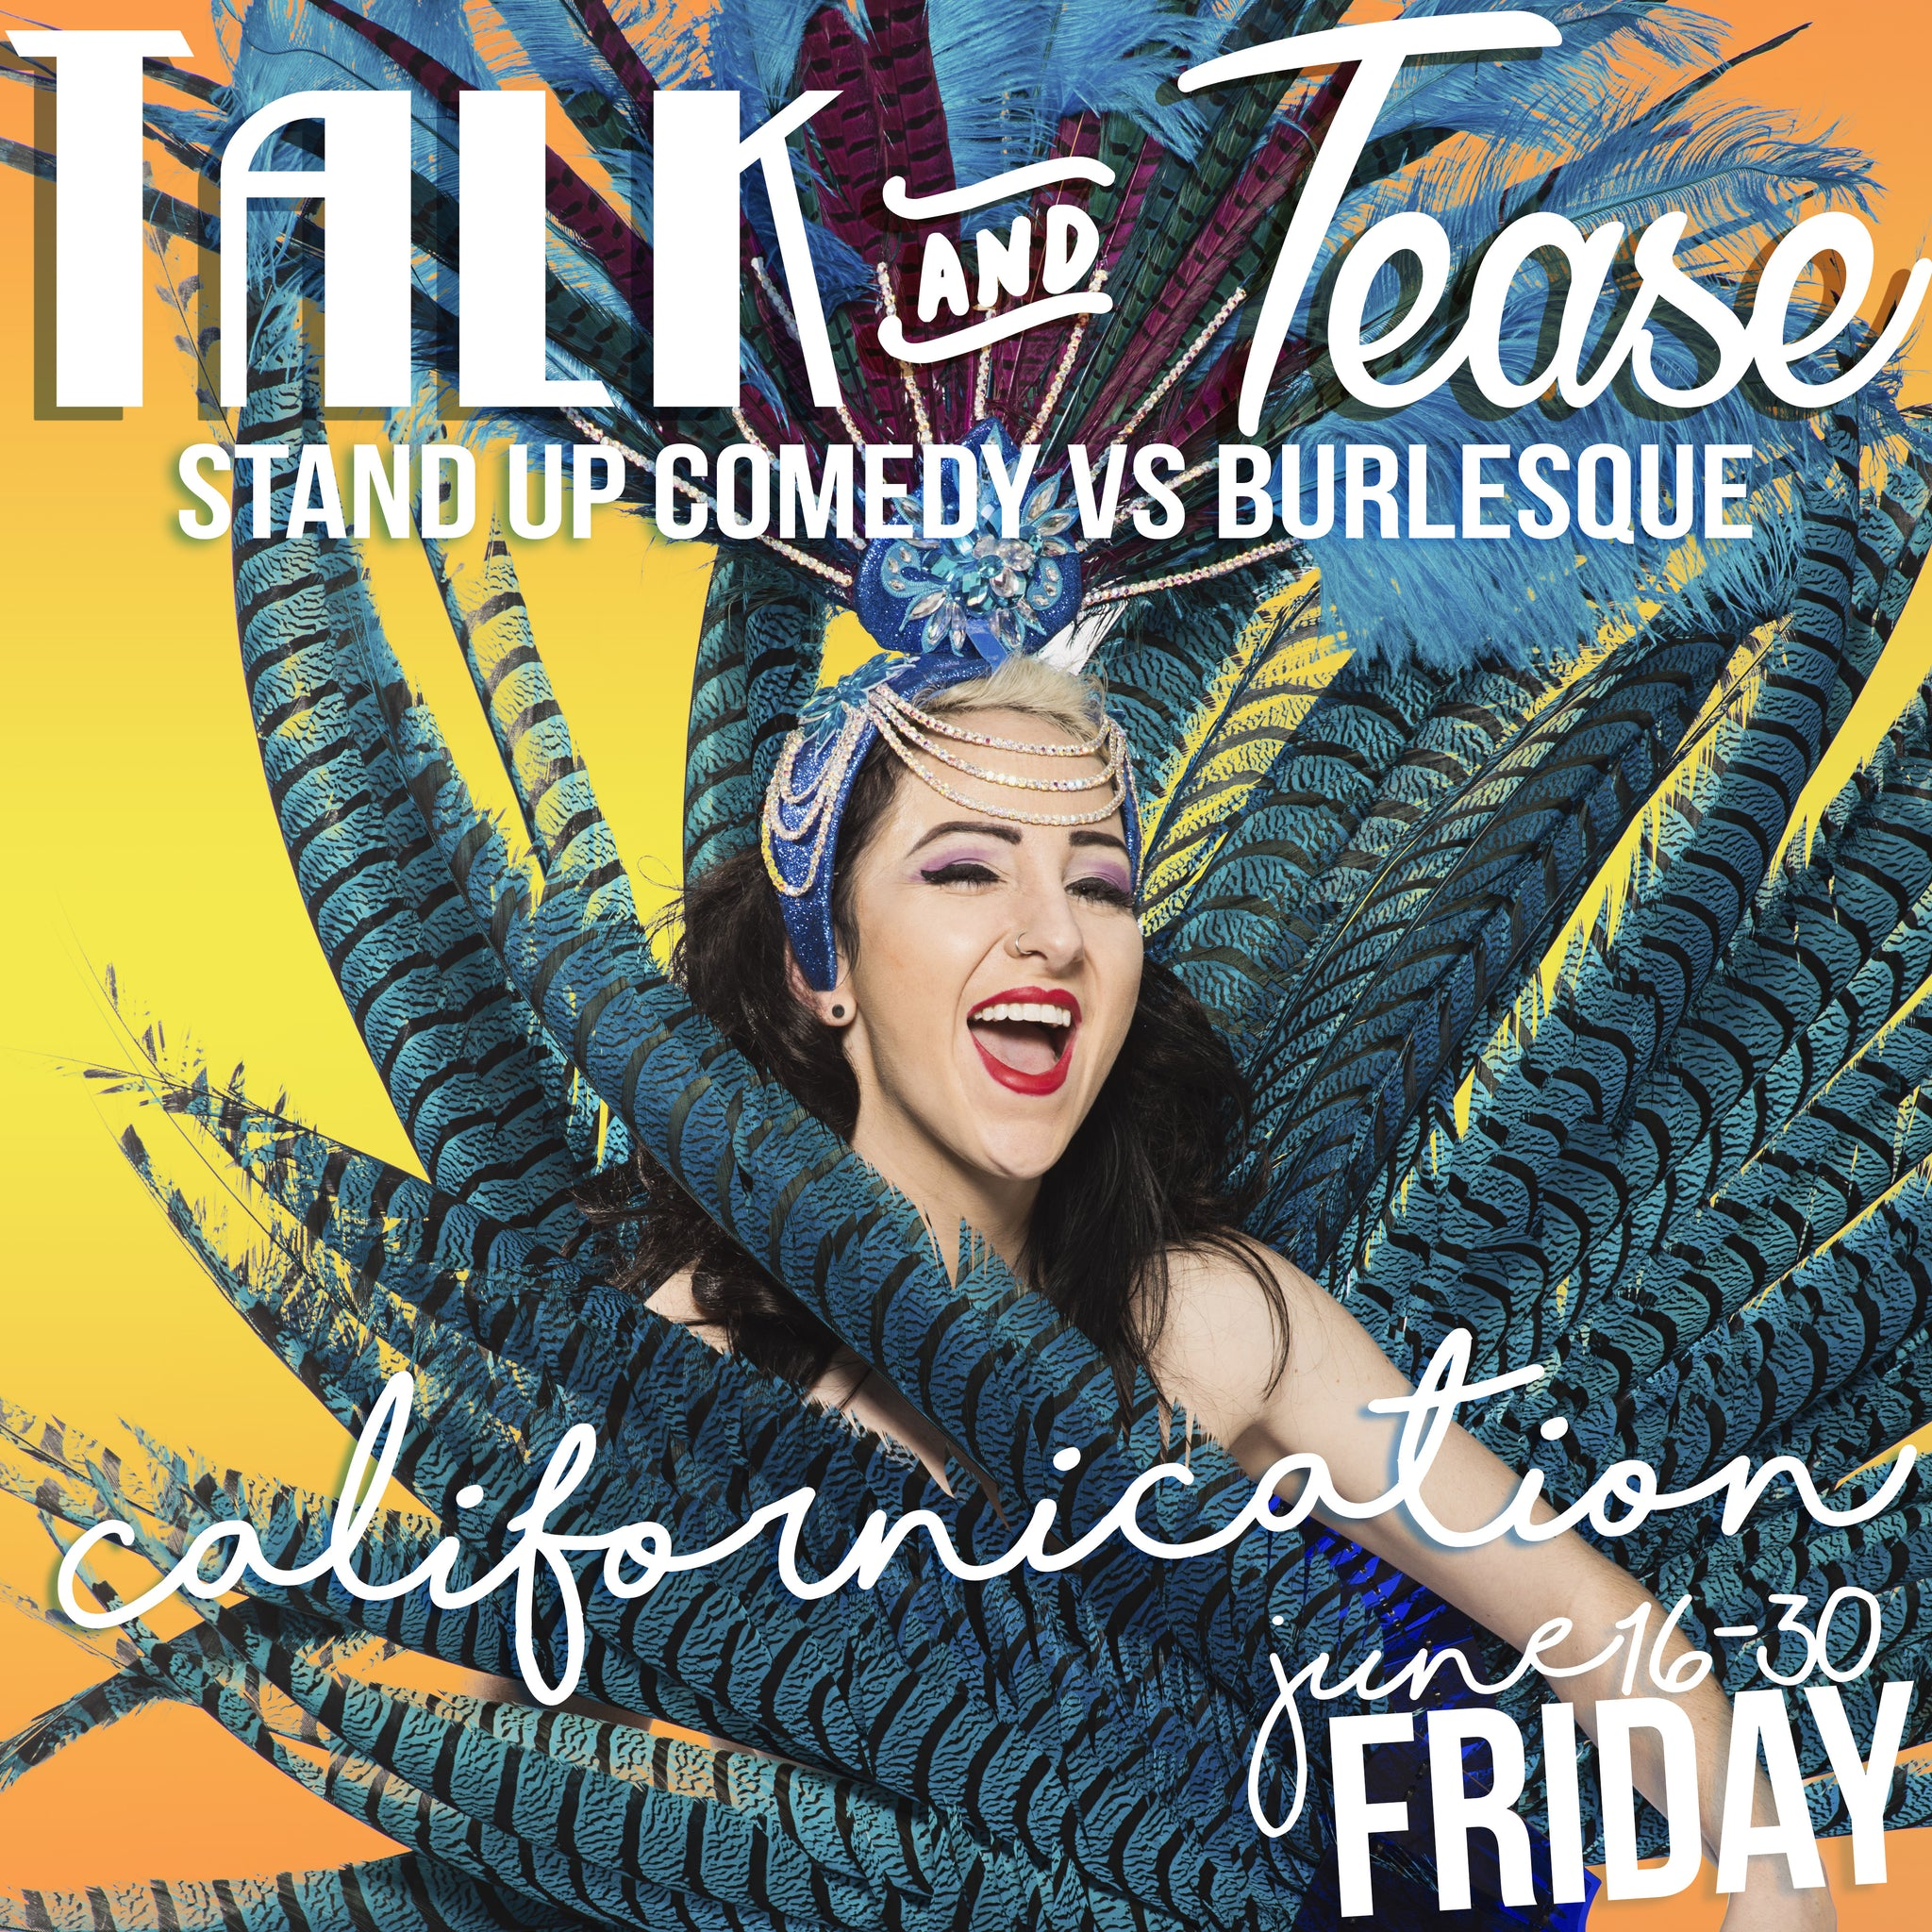 FRIDAY June 23rd Talk and Tease Californication - Tickets - Burlesque Sydney- The Bamboozle Room